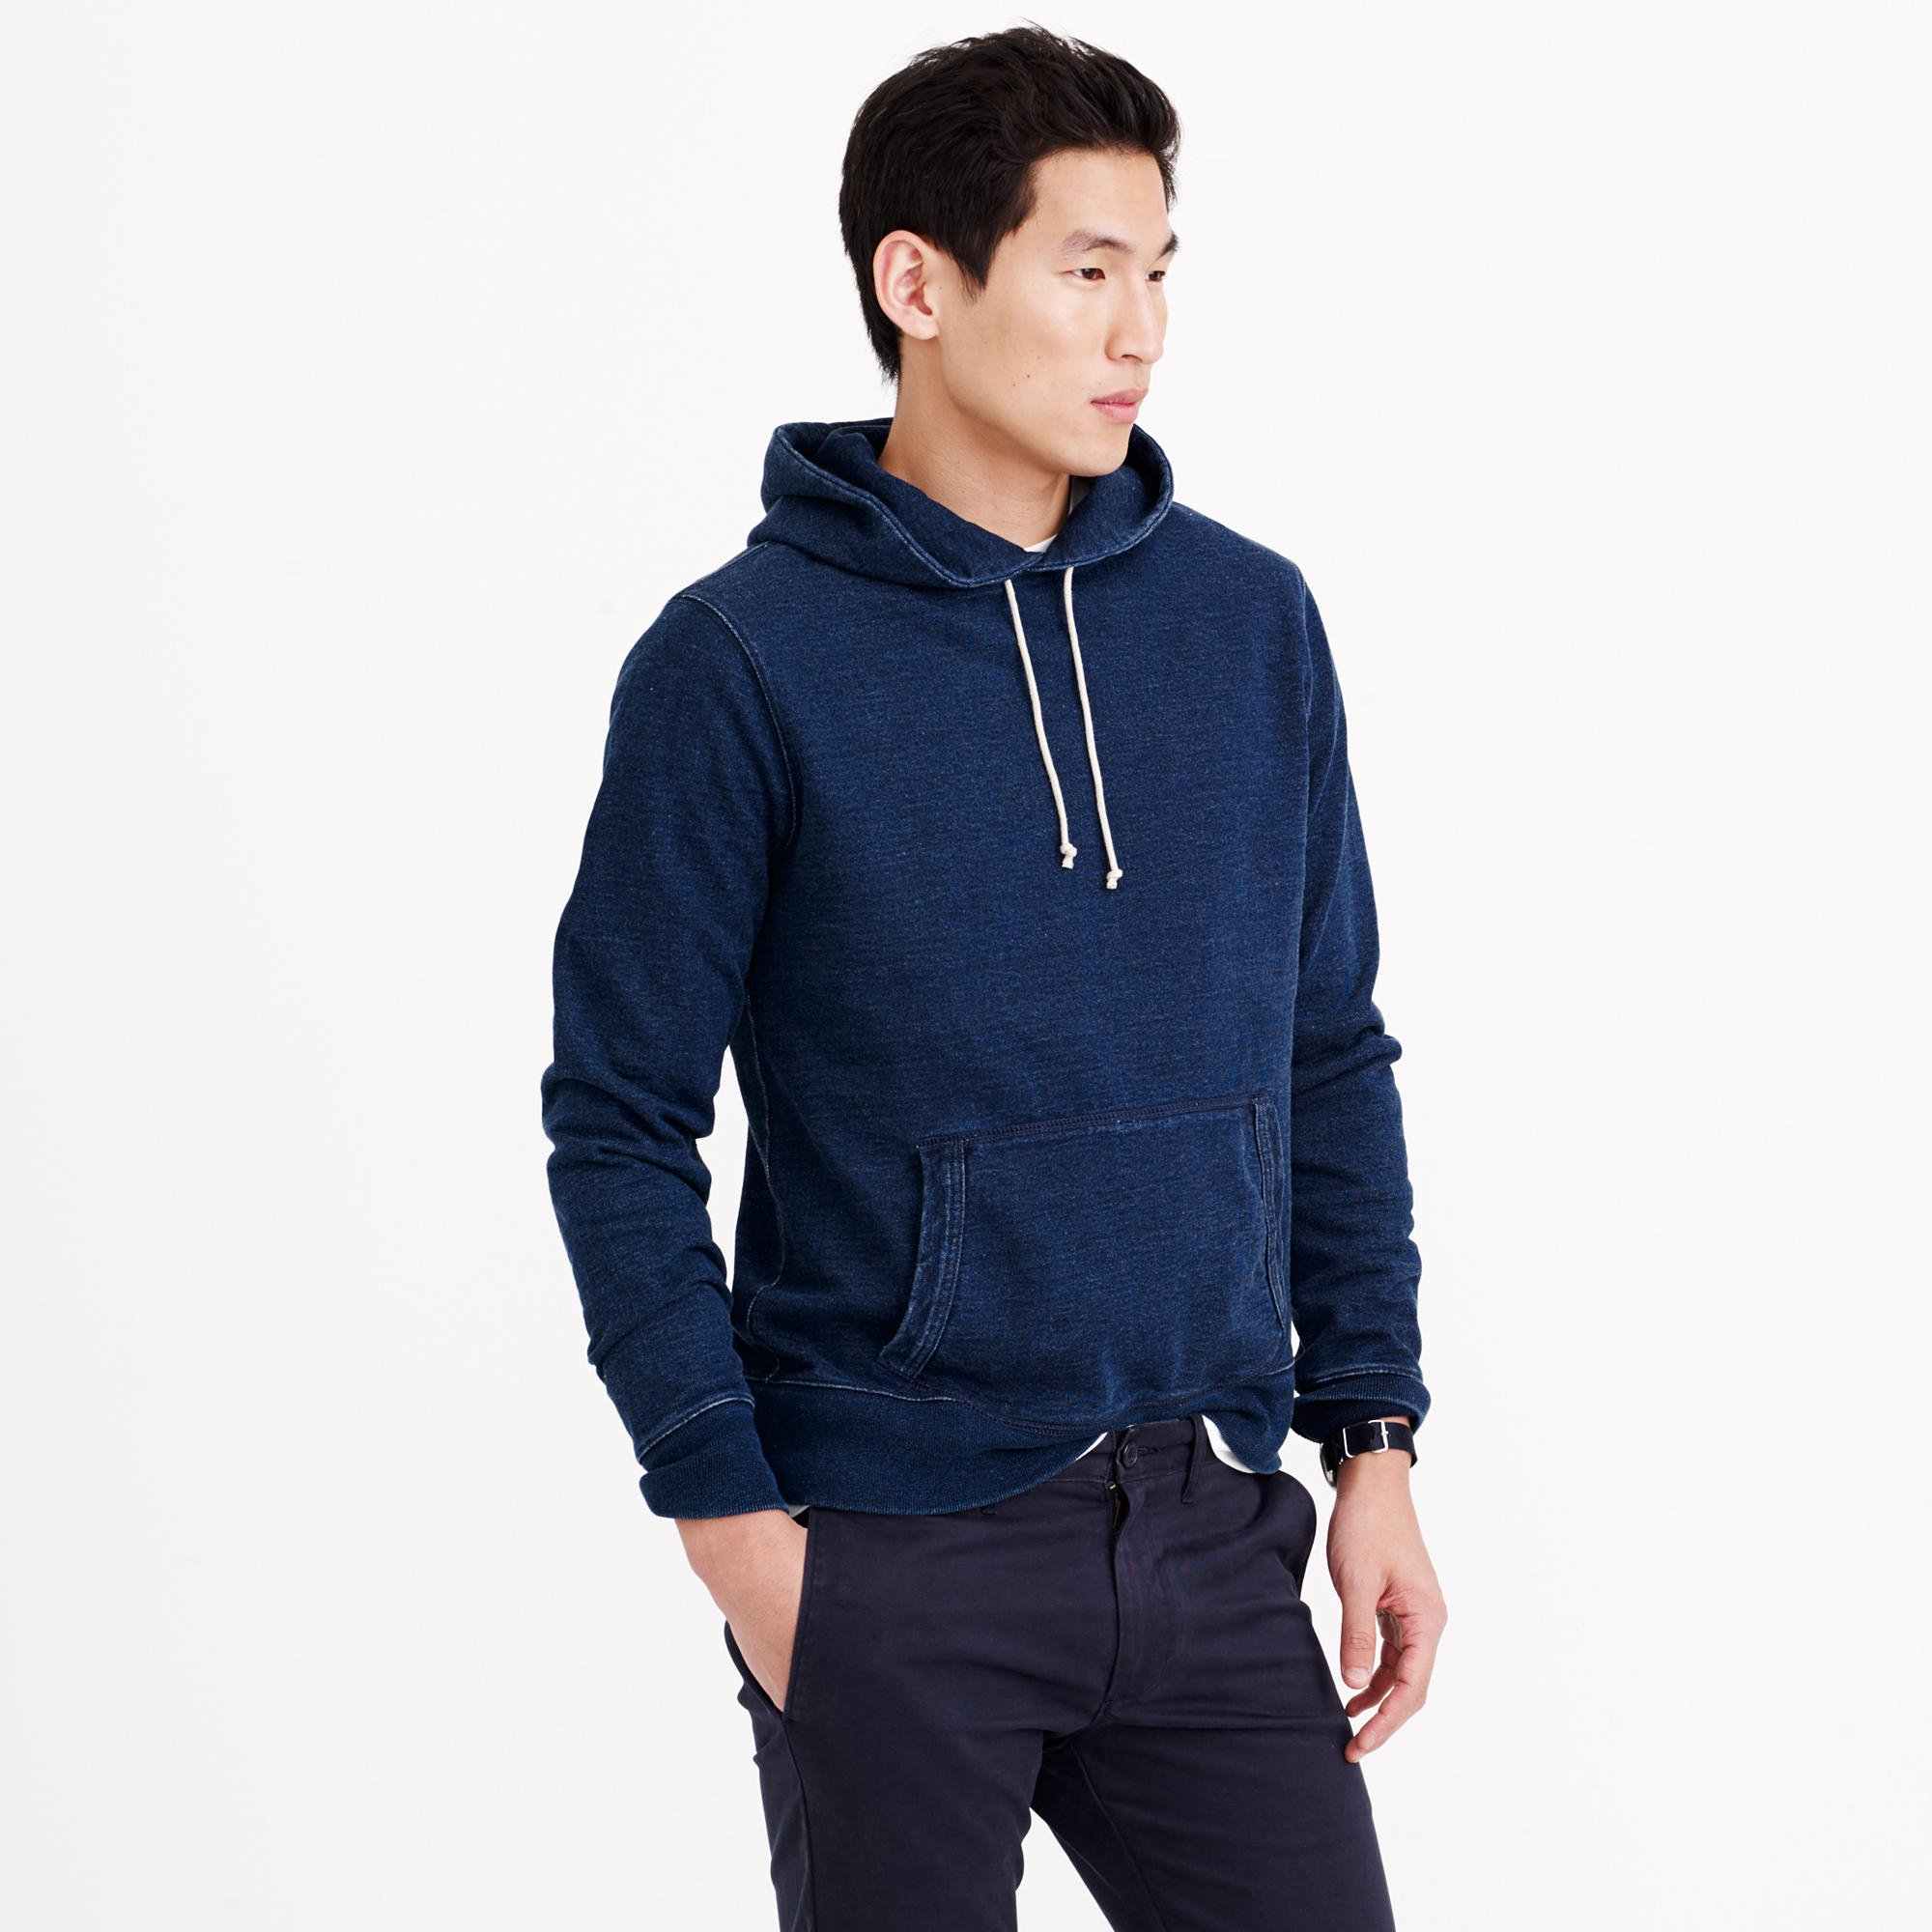 J Crew Wallace Amp Barnes Indigo Pullover Hoodie In Blue For